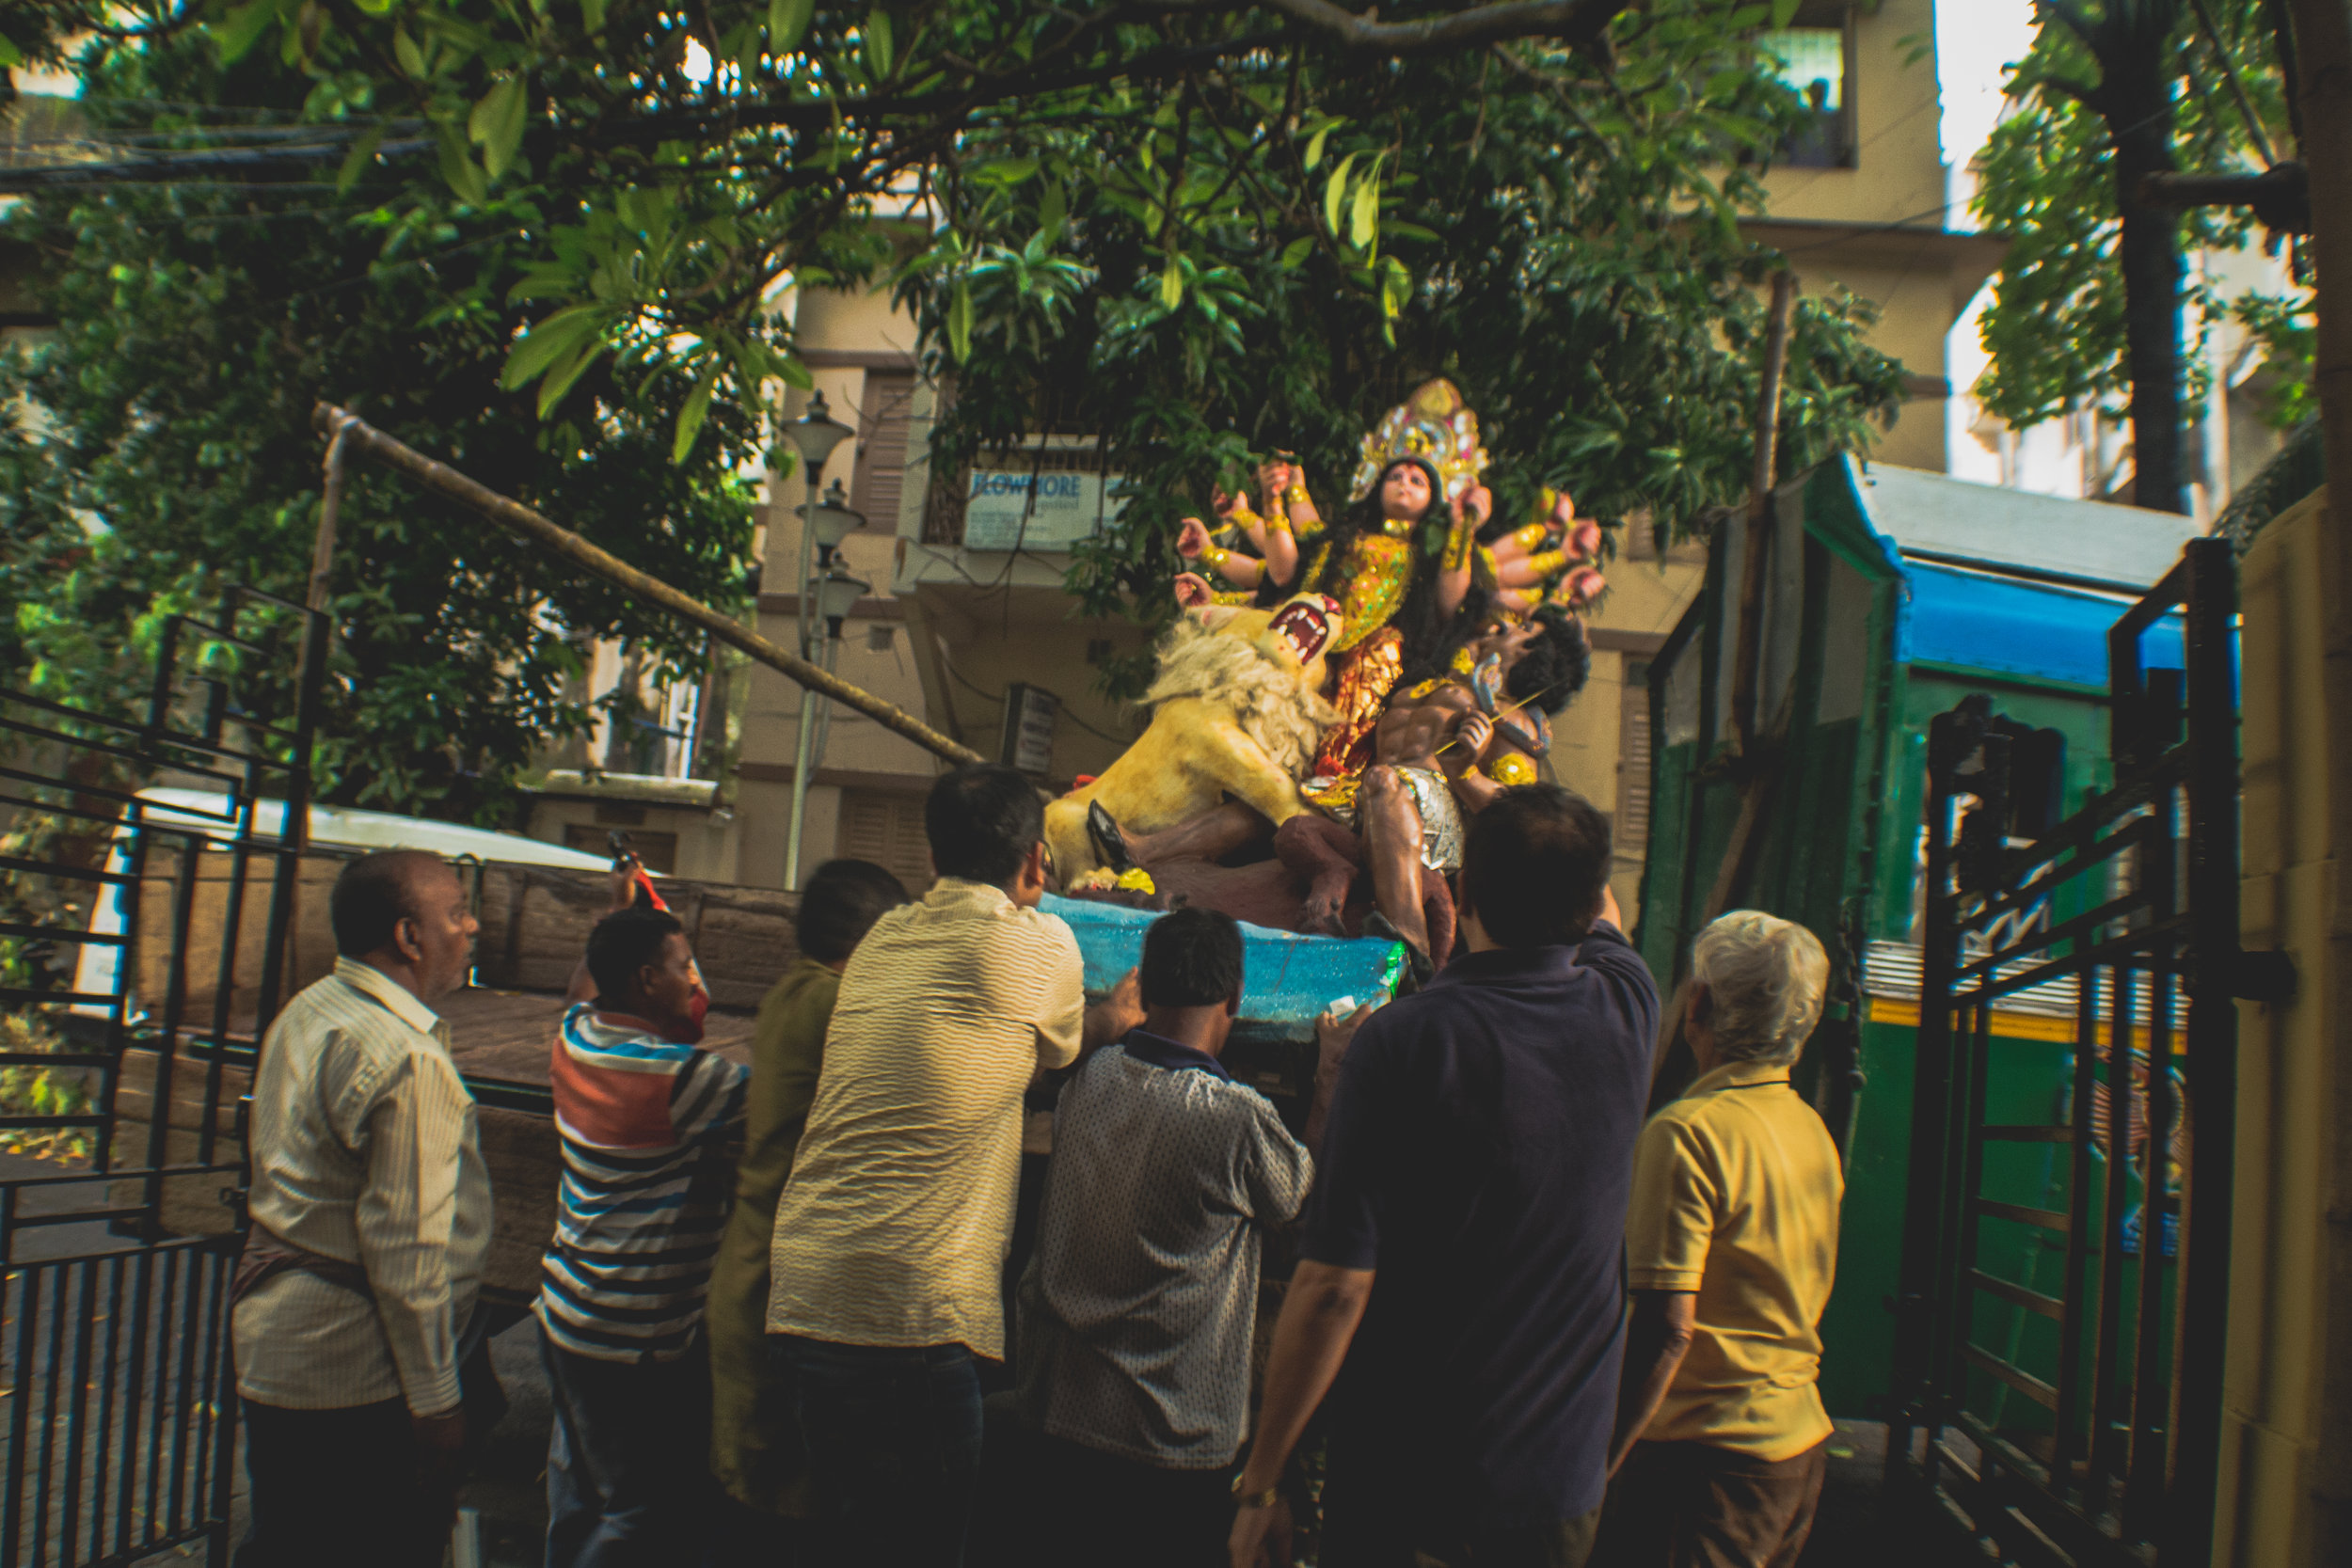 On the day of  Bissarjan , family and friends of the Chatterjee family in South Kolkata heave a home idol onto a truck, to carry her to the Ganges.